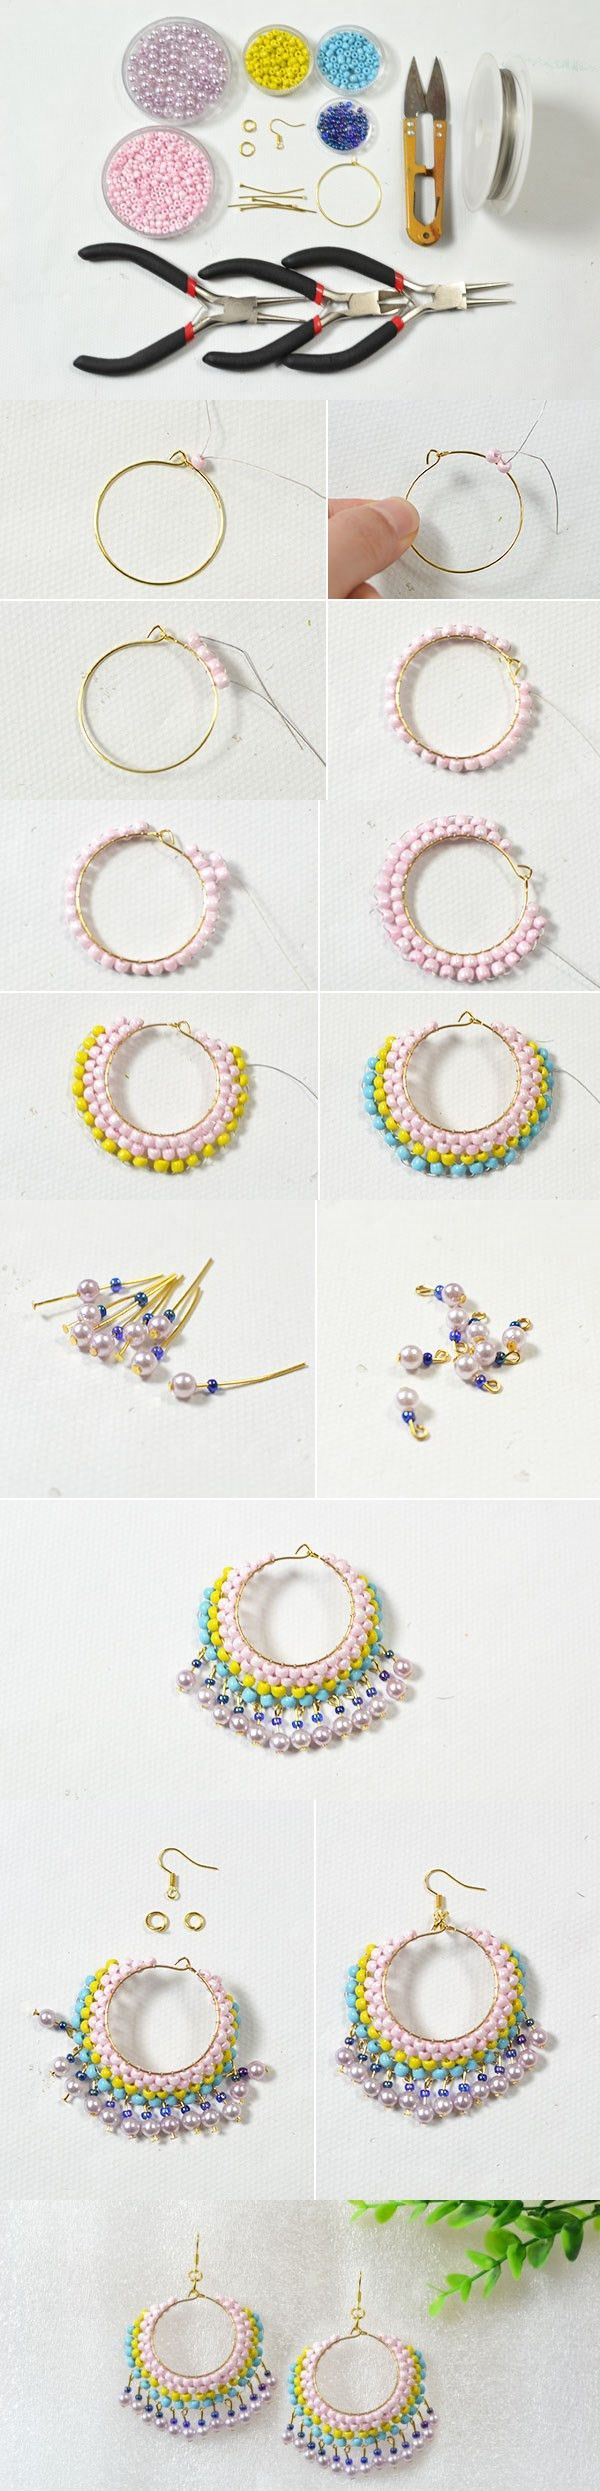 DIY Jewelry: Easy Earring Design for Green Hands – Making Beaded ...